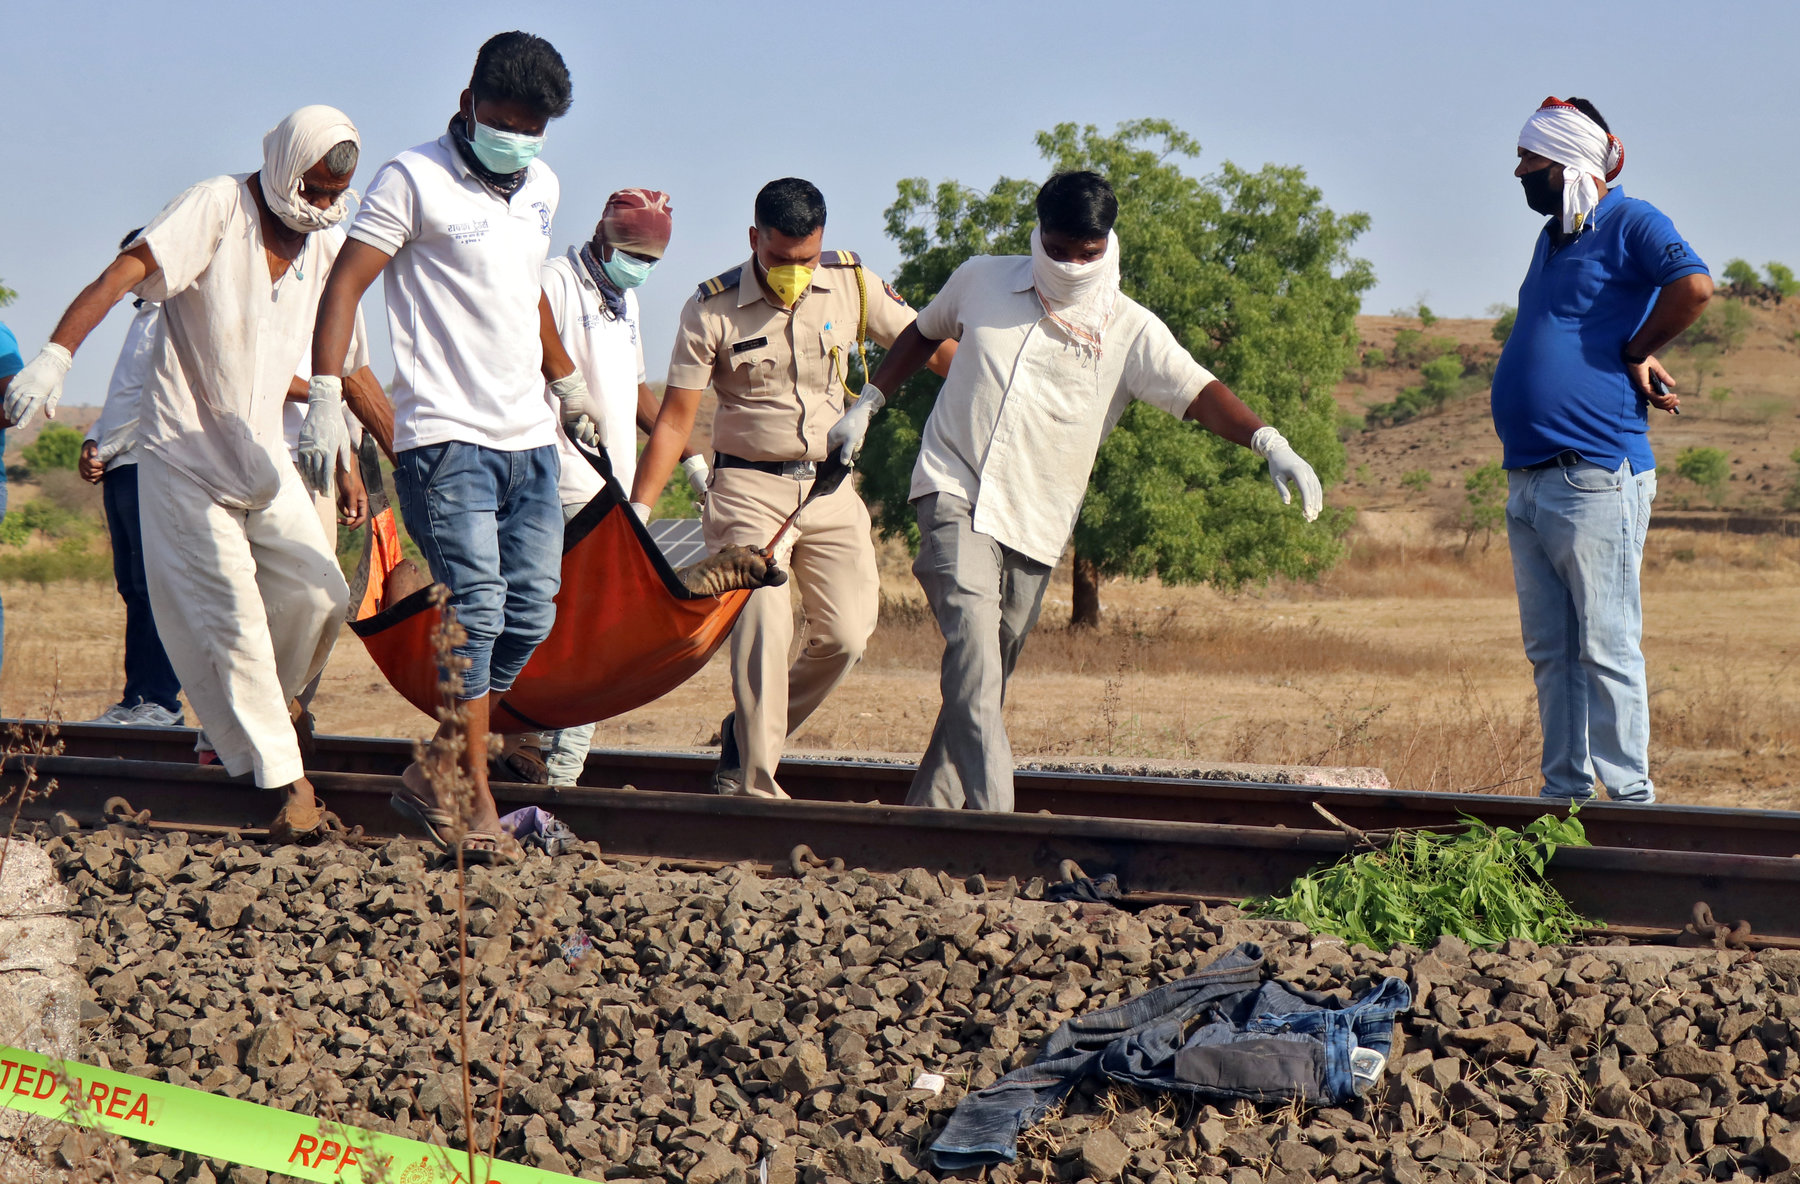 A train ran over 16 sleeping migrants who were en route their native place.